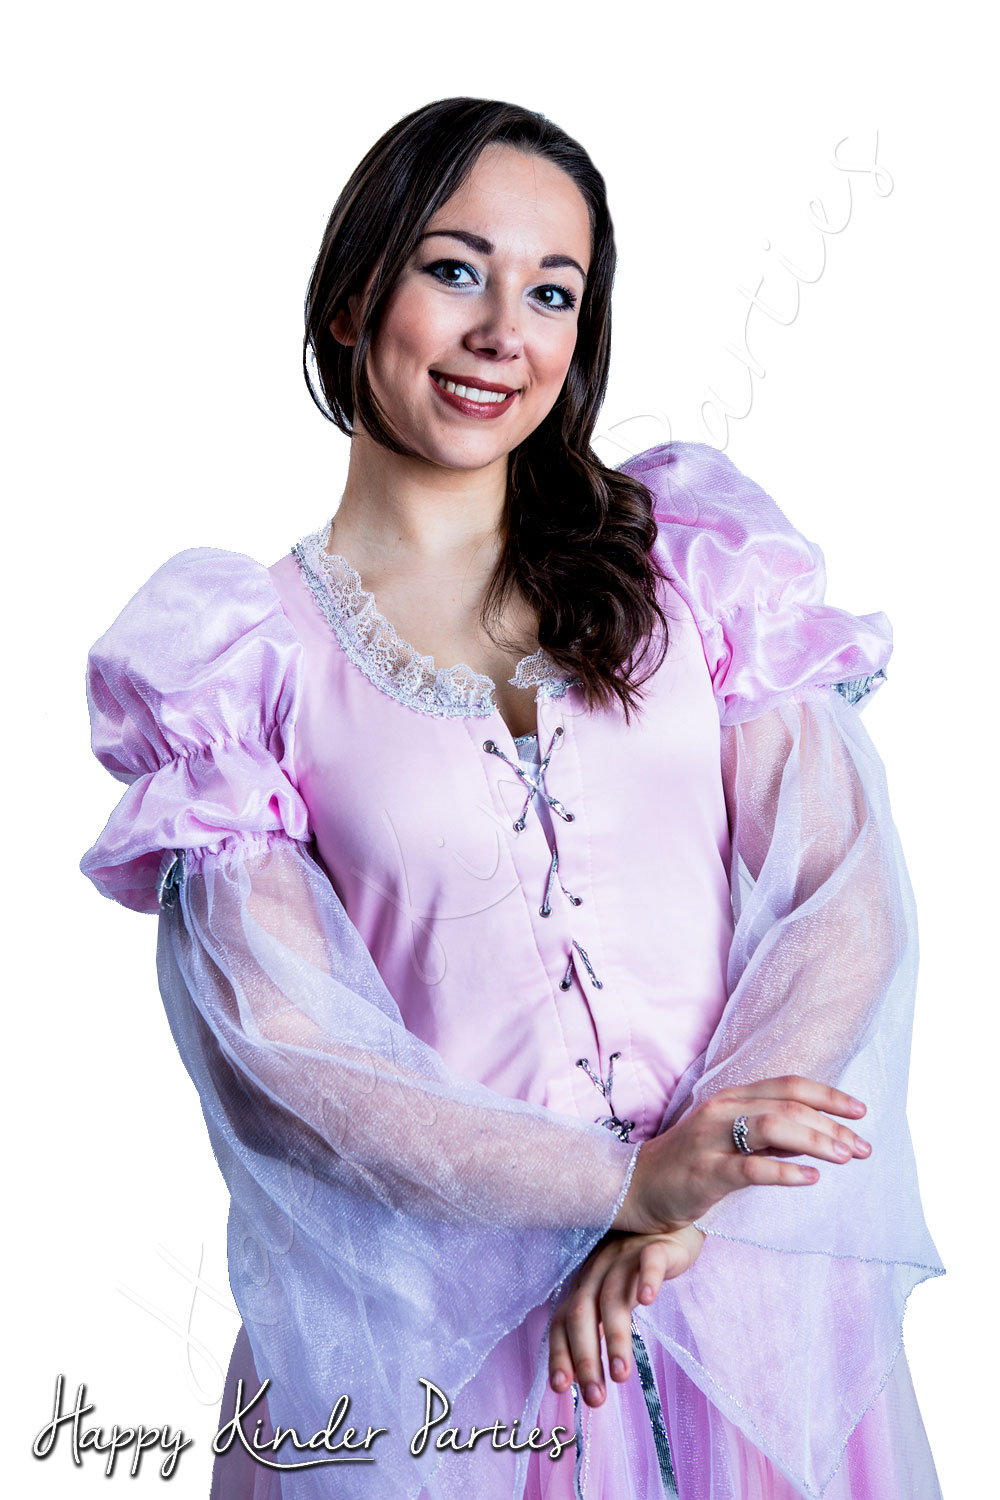 Princess Aurora Childrens Party Entertainer Costume